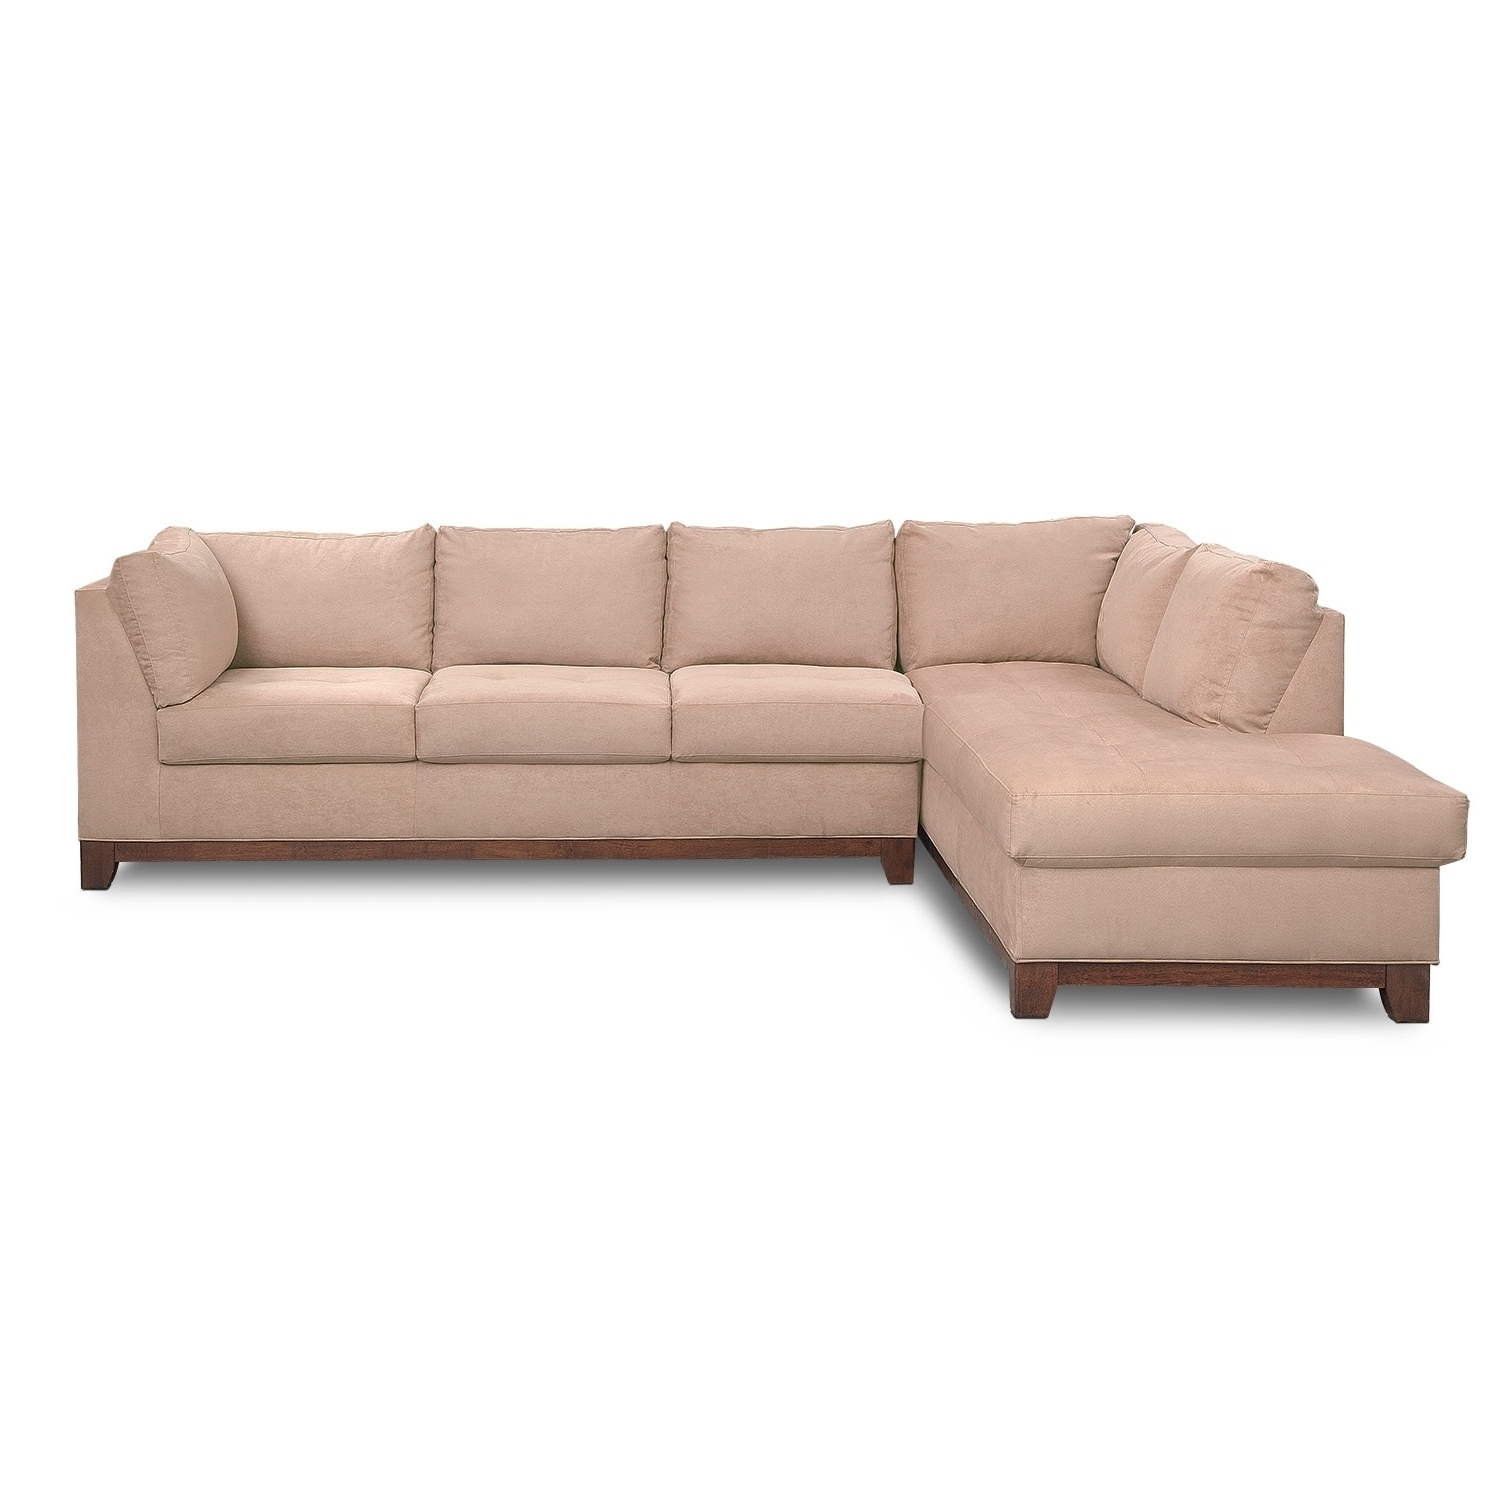 Most Up To Date Left Facing Chaise Sectionals Inside Soho 2 Piece Sectional With Left Facing Chaise – Cobblestone (View 5 of 15)